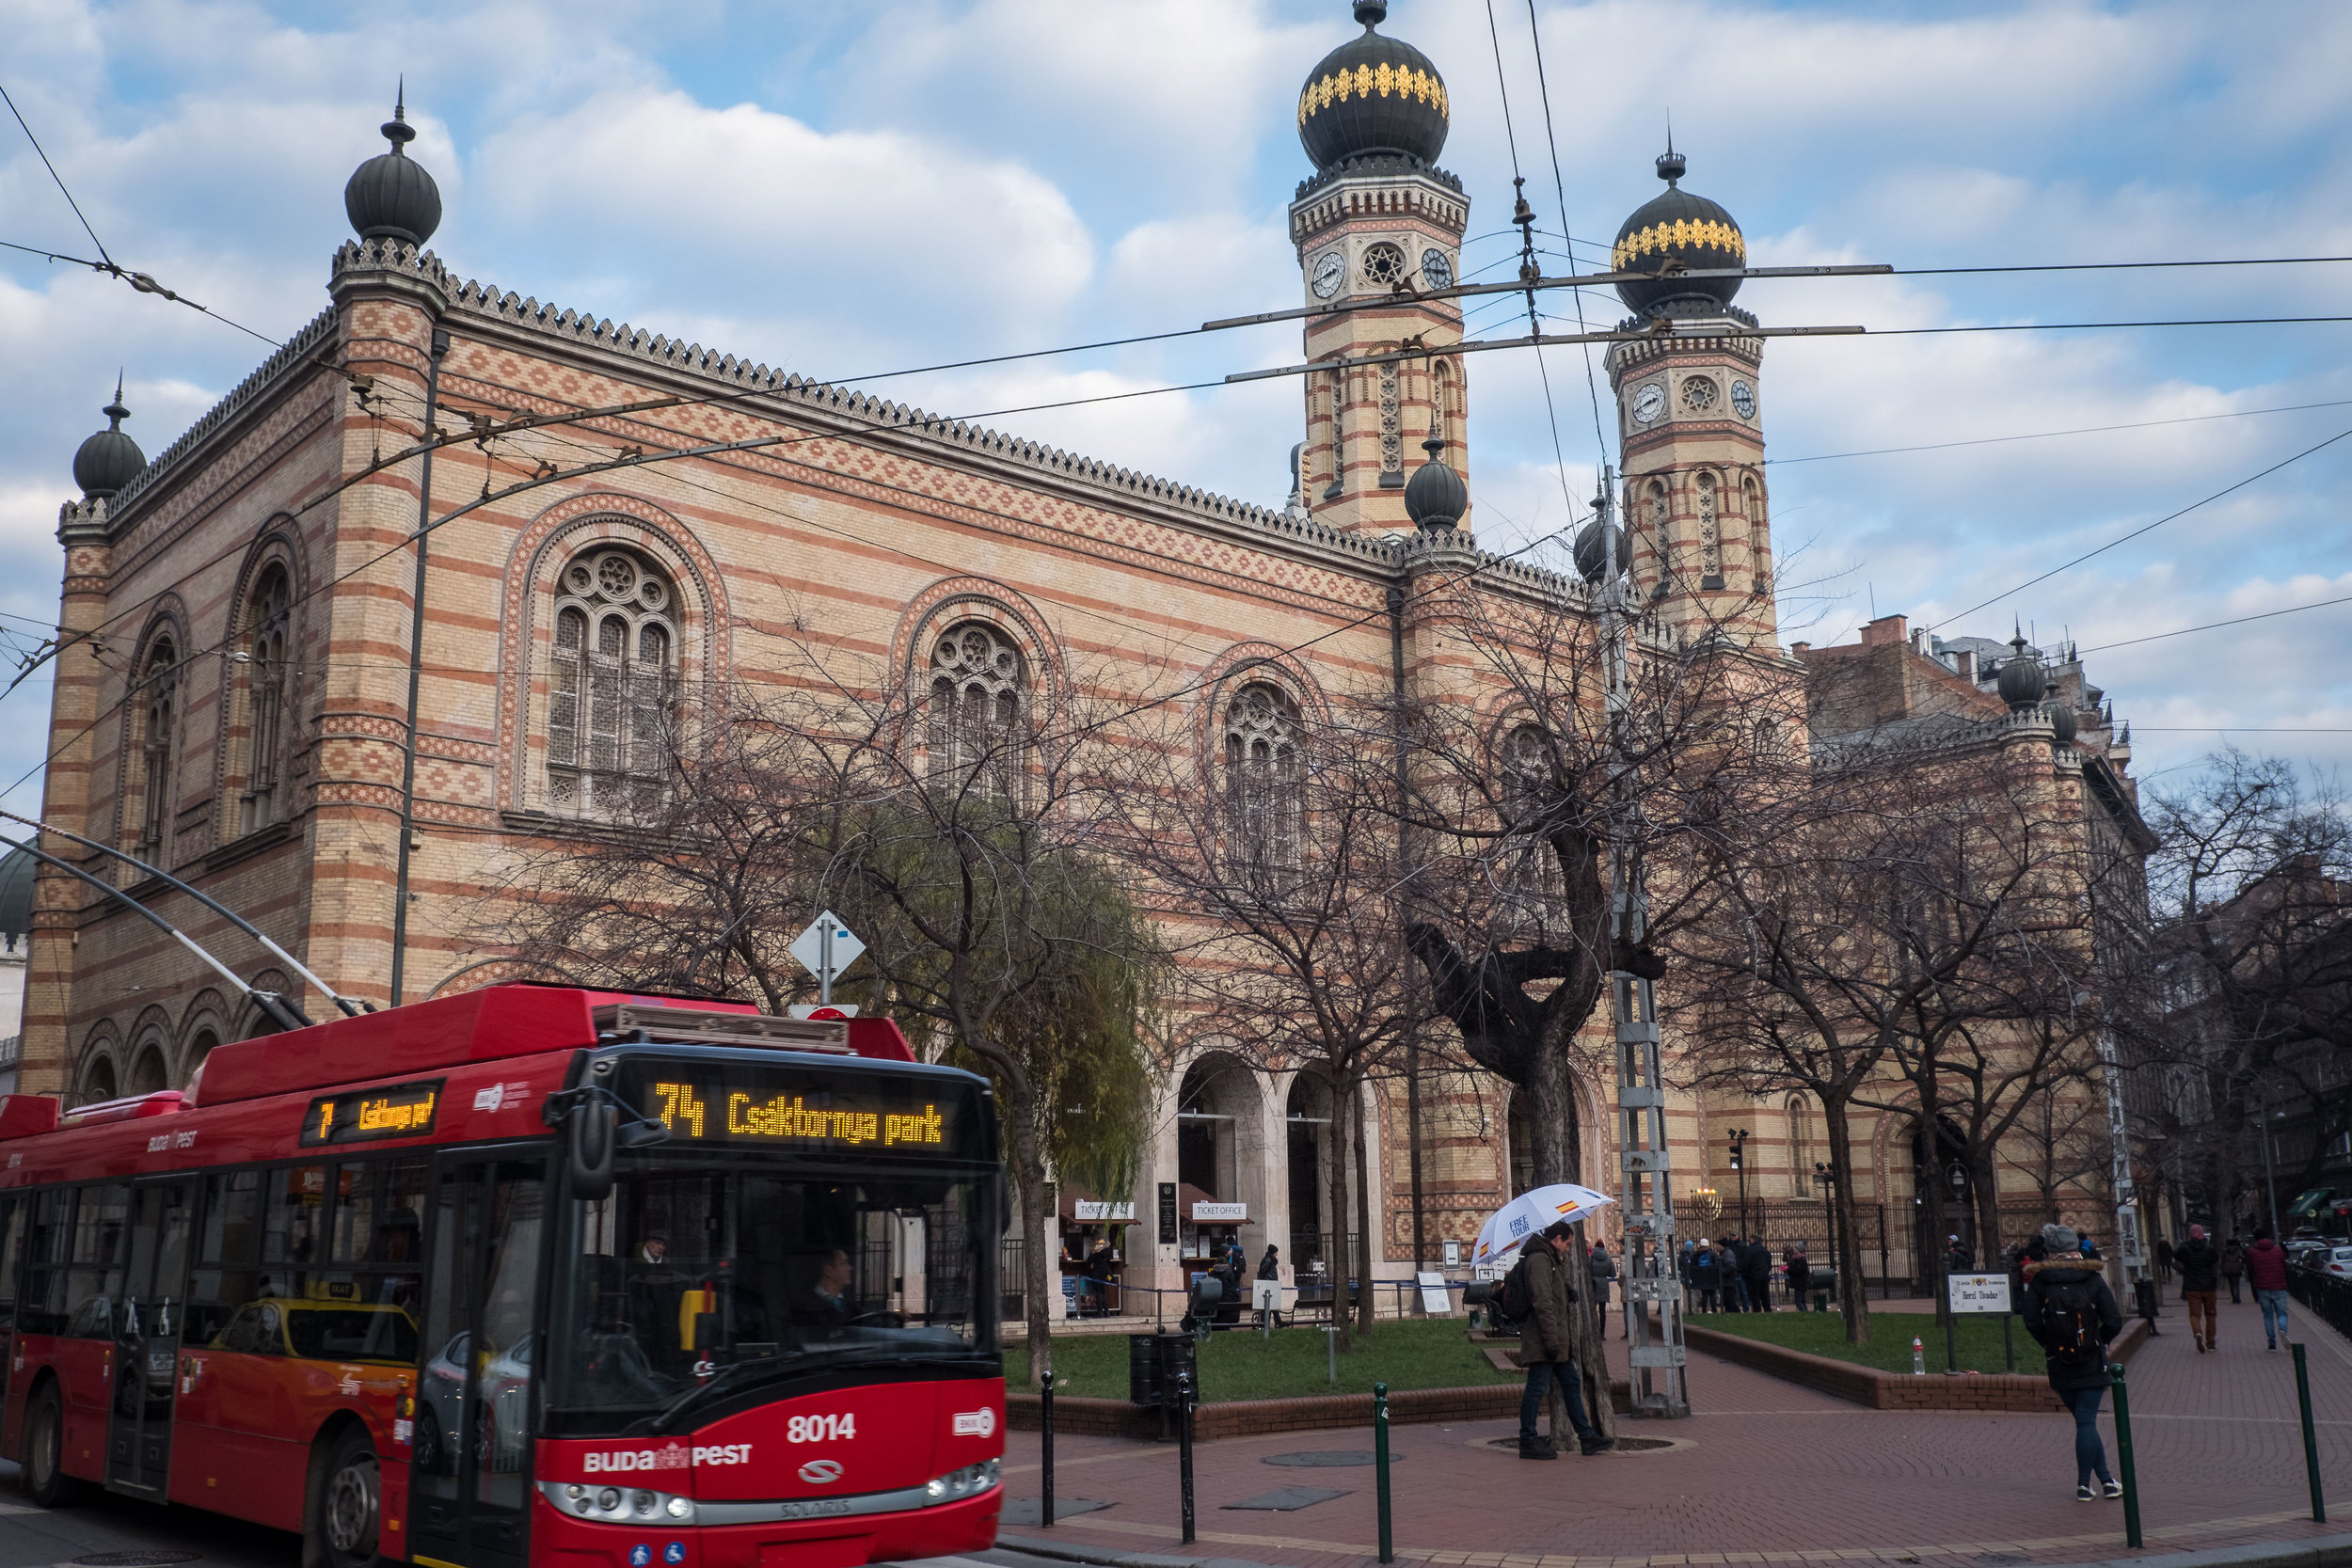 the bus trolley passes Rumbach Street Synagogue